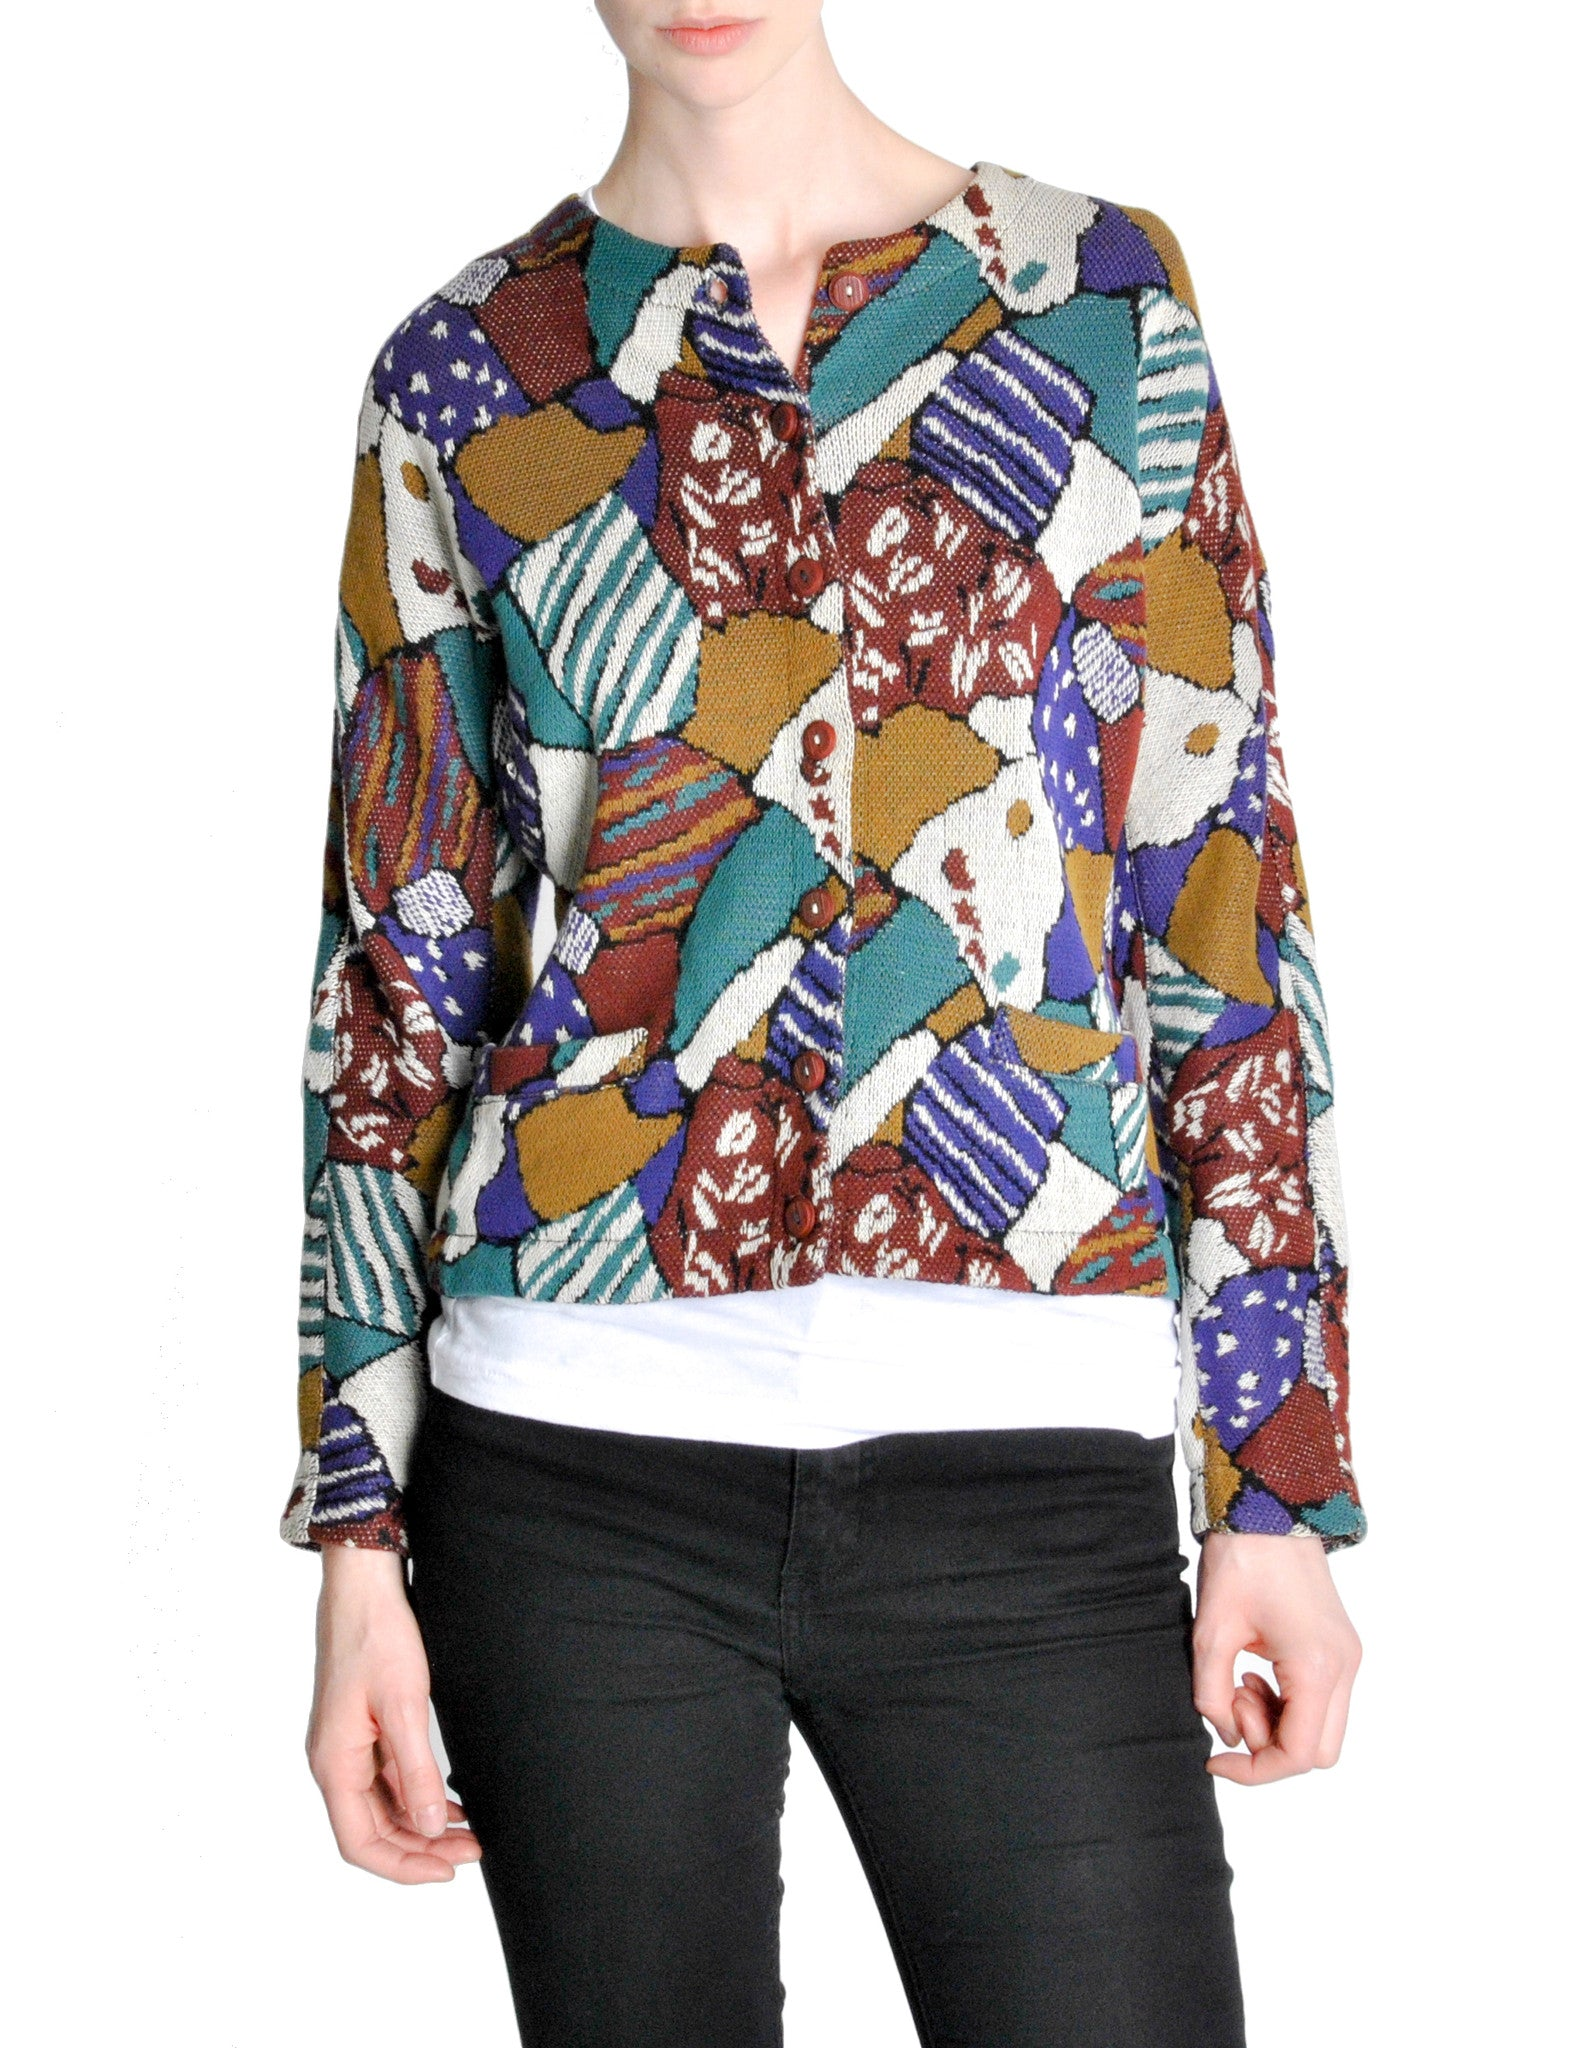 Missoni Vintage 'Patchwork' Print Knit Cardigan Sweater - Amarcord Vintage Fashion  - 1